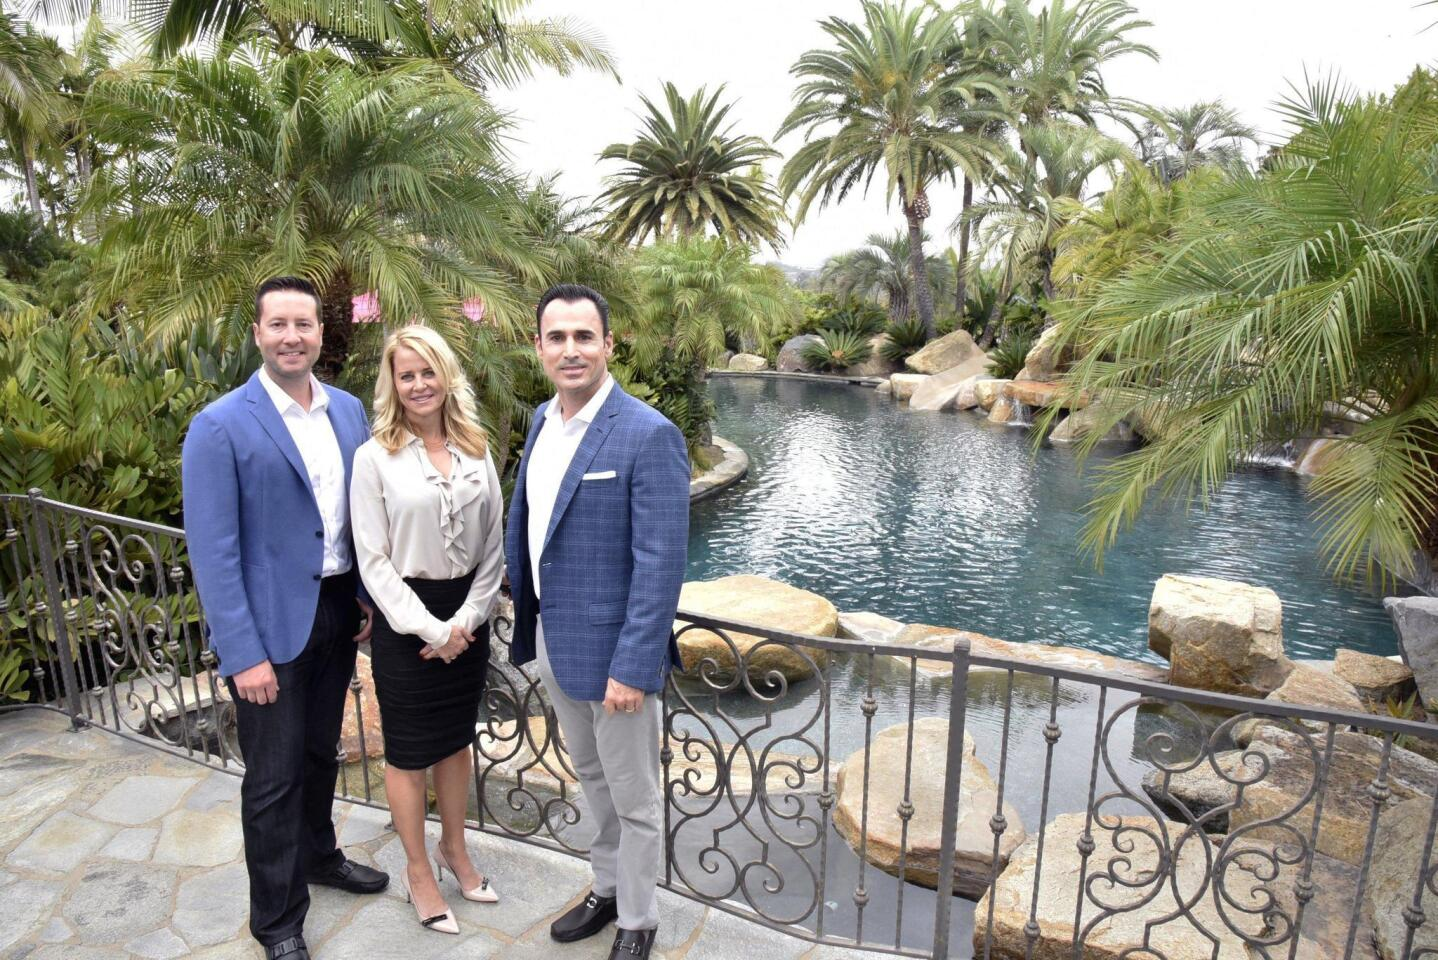 Barry Estates Realtor Ryan McGovern, Realtor Kendra Gibilisco, and Broker Jason Barry at their listing on La Valle Plateada in Rancho Santa Fe